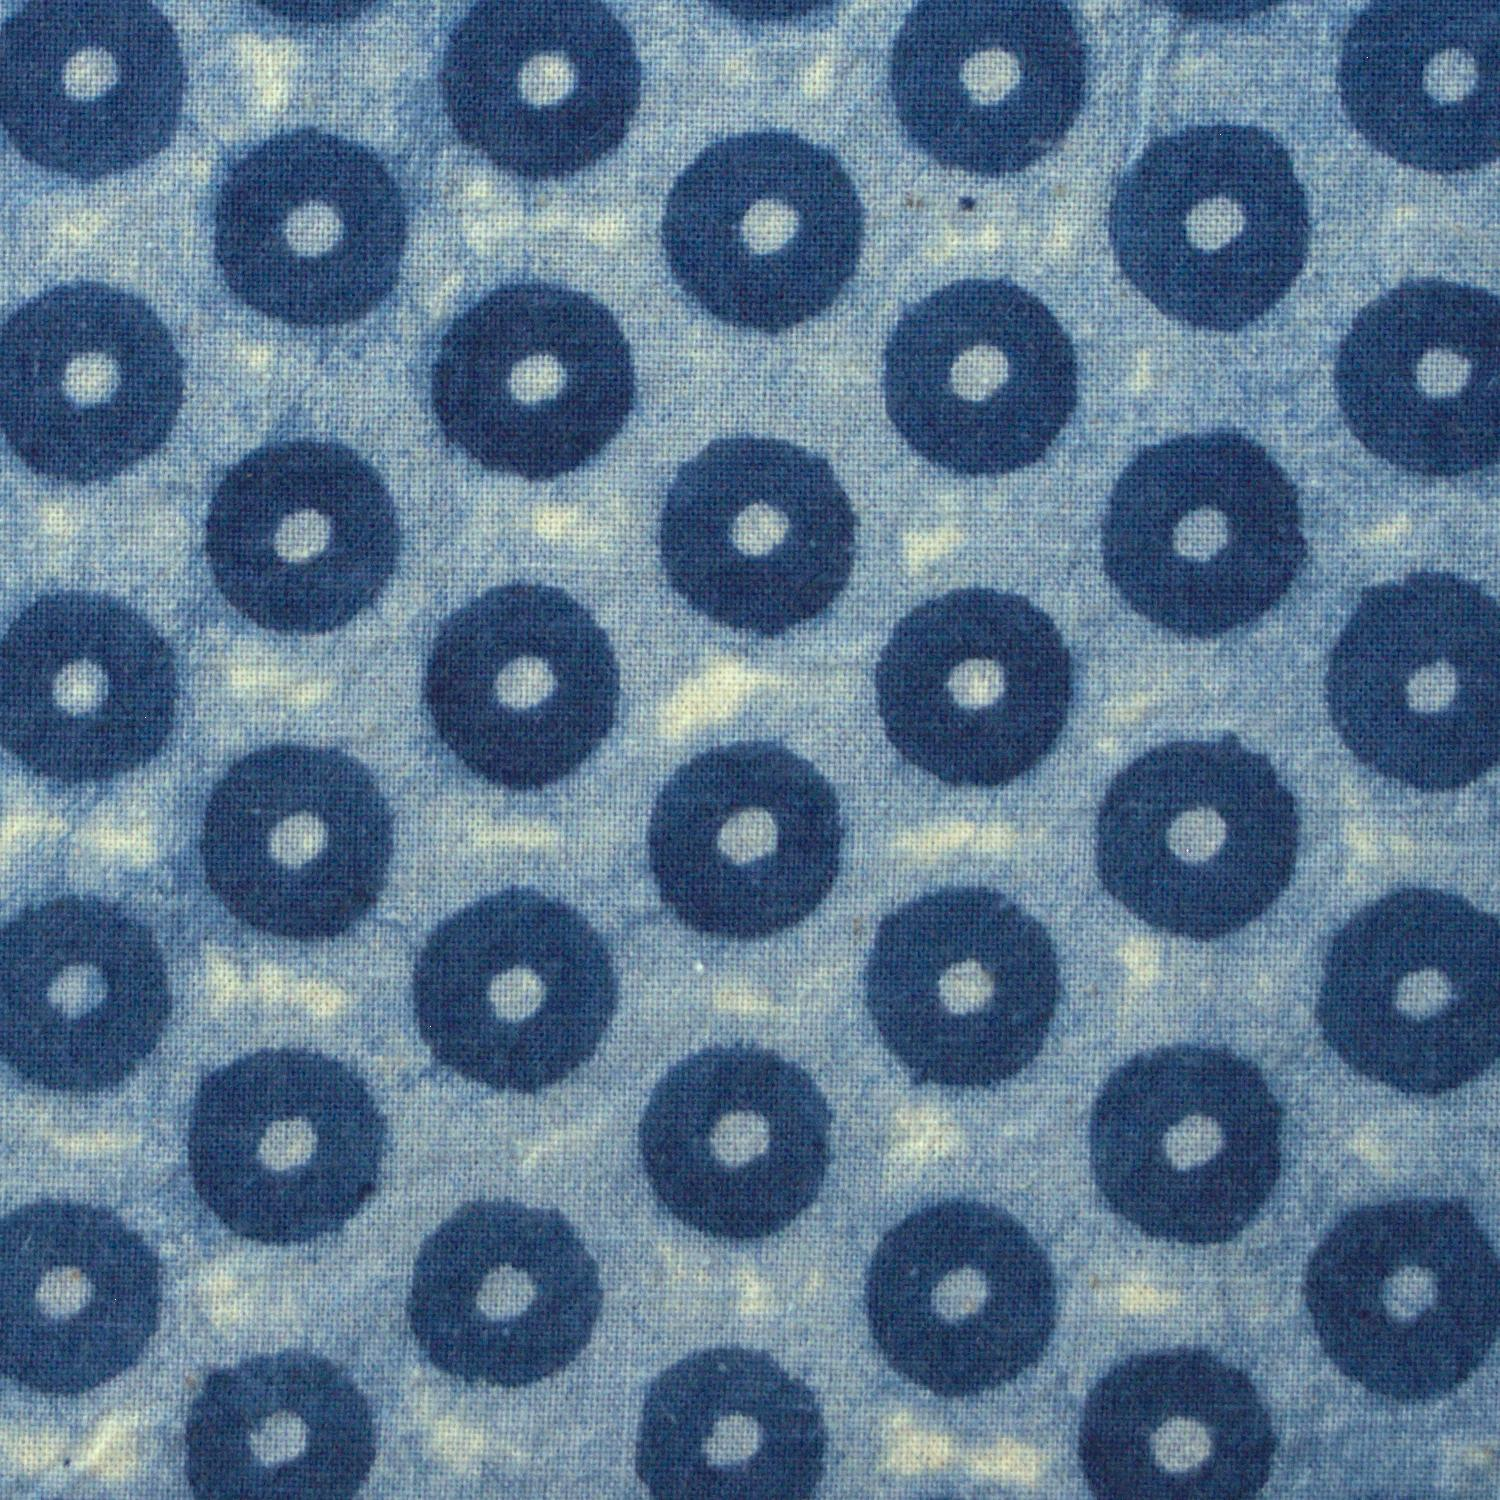 100% Block-Printed Cotton Fabric From India- Ajrak - Indigo White Resist Pins Print - Close Up